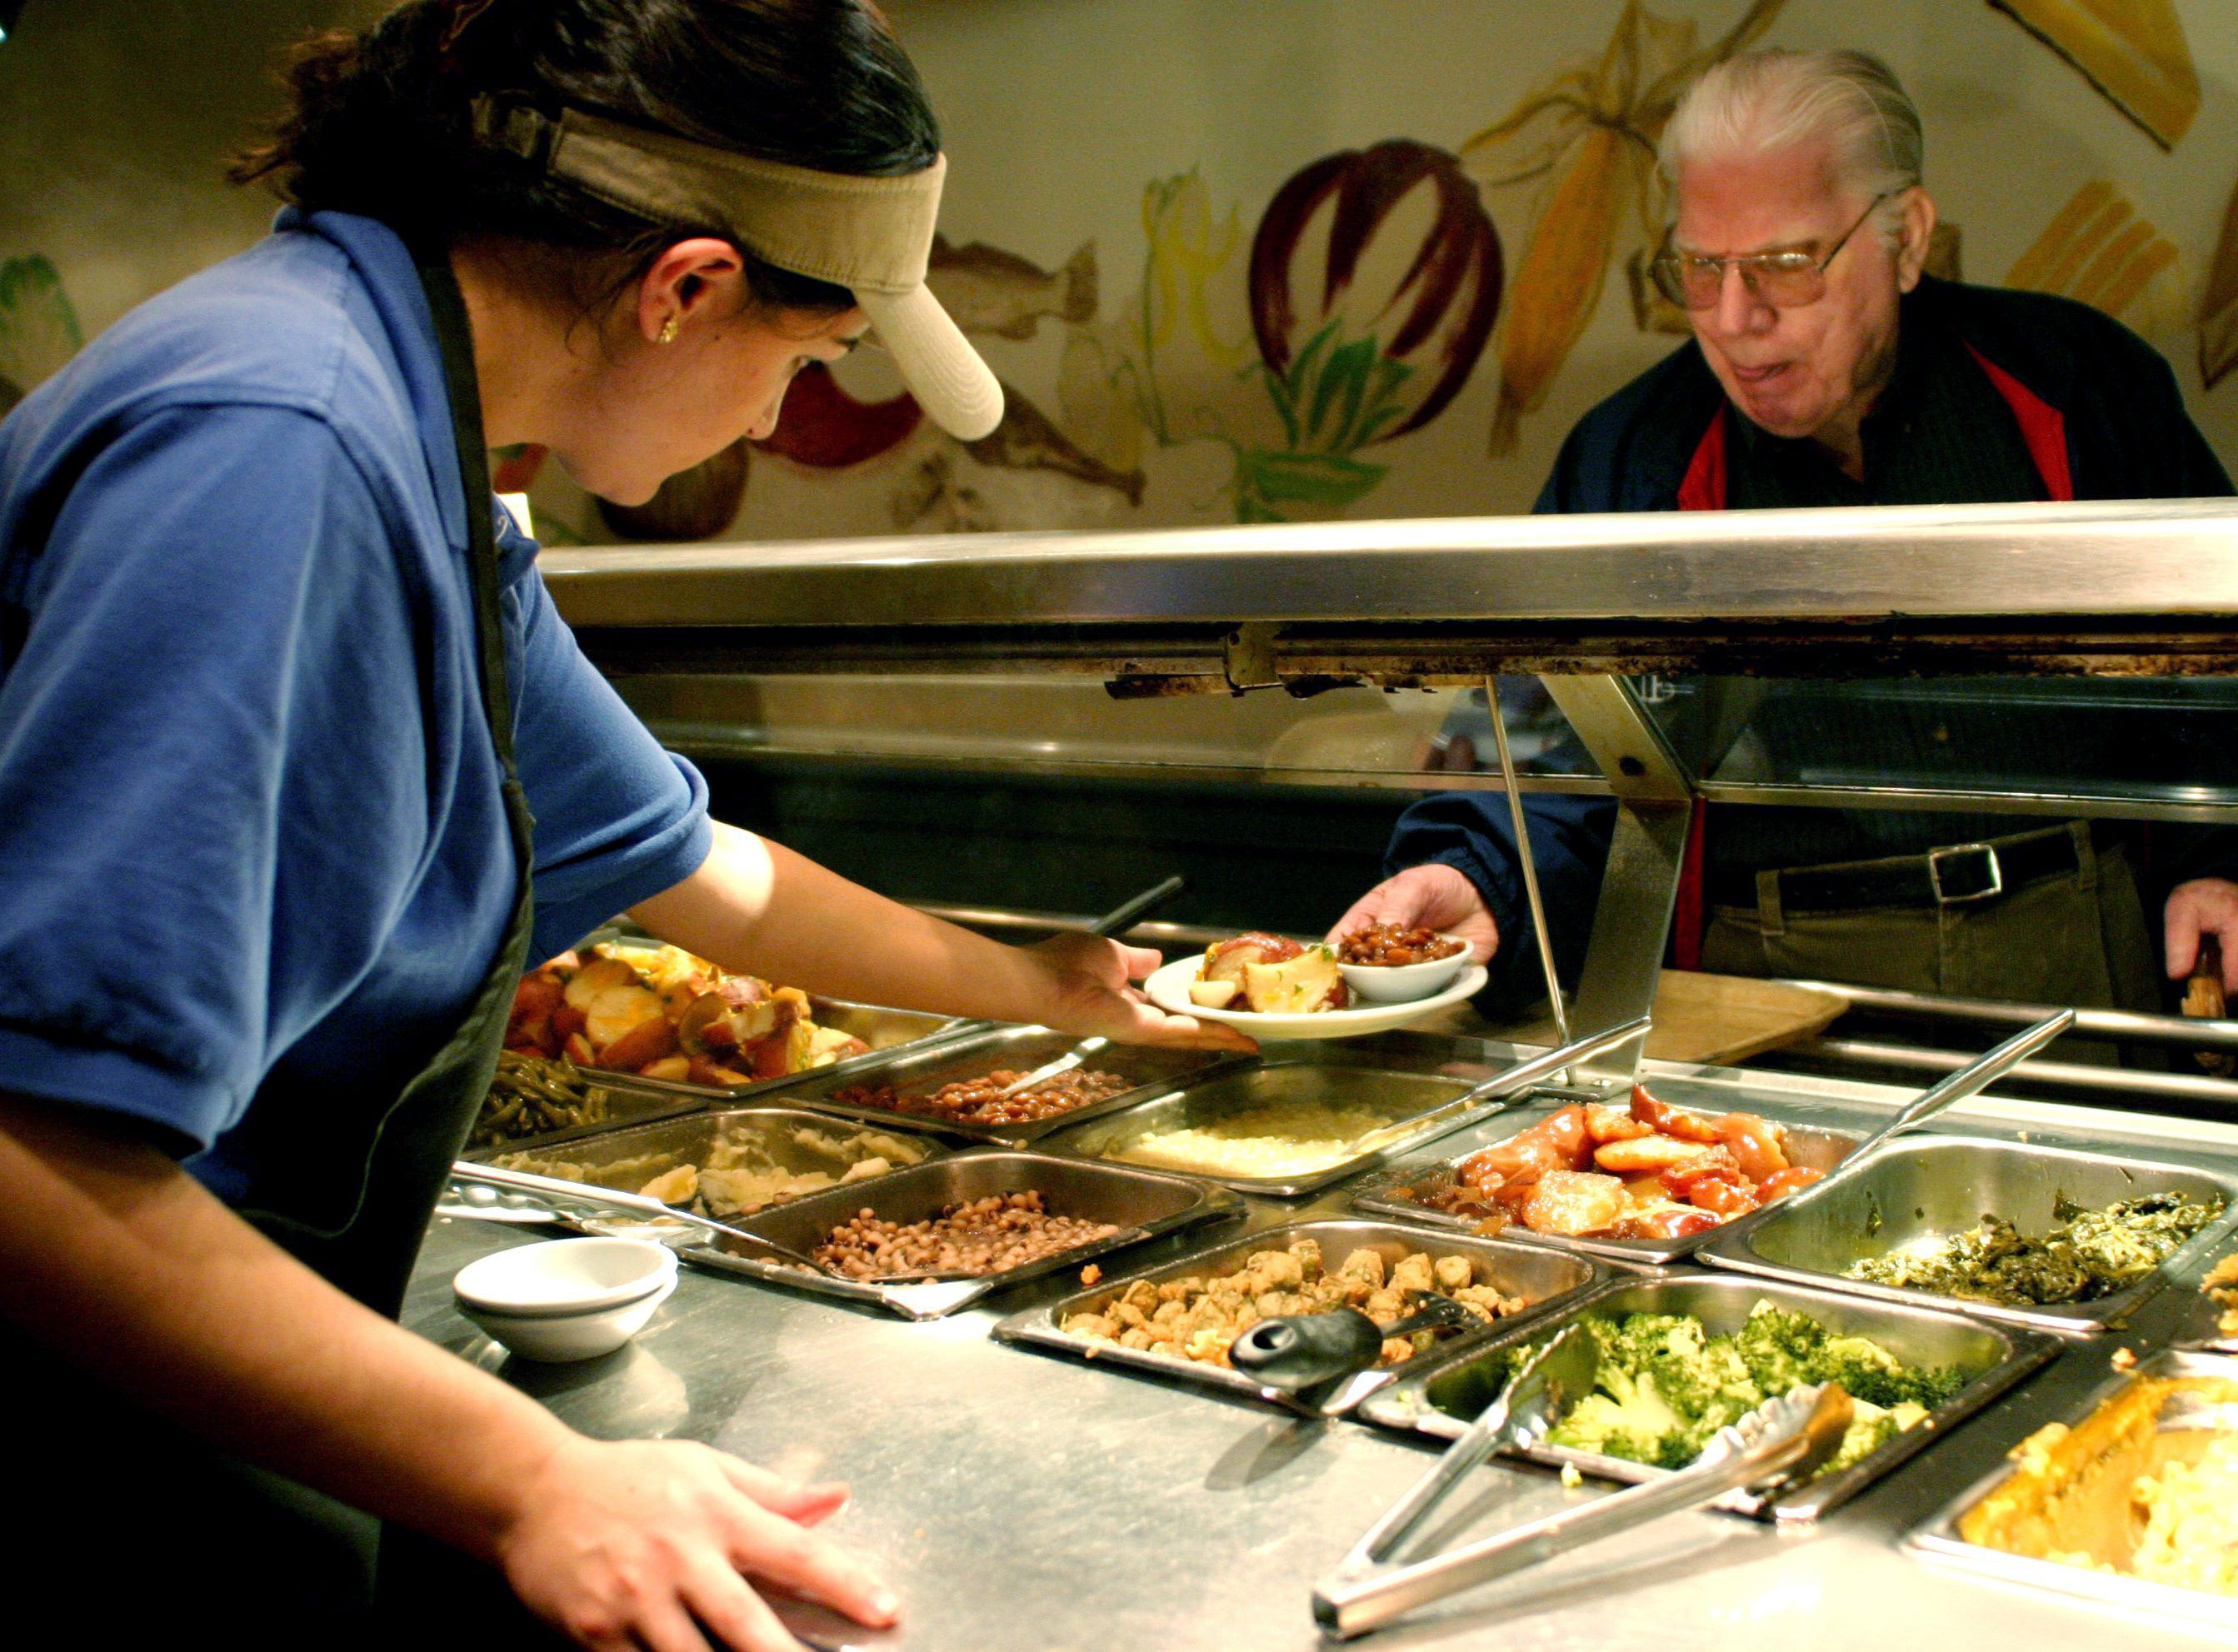 Clay Coble, right, a retired educator makes his way through the line at the Belle Meade Cafeteria as Bukurie Zymeri hands him his plate Dec. 31, 2003. The cafeteria is the city's oldest free standing restaurant and maintains it old charm and classic taste.